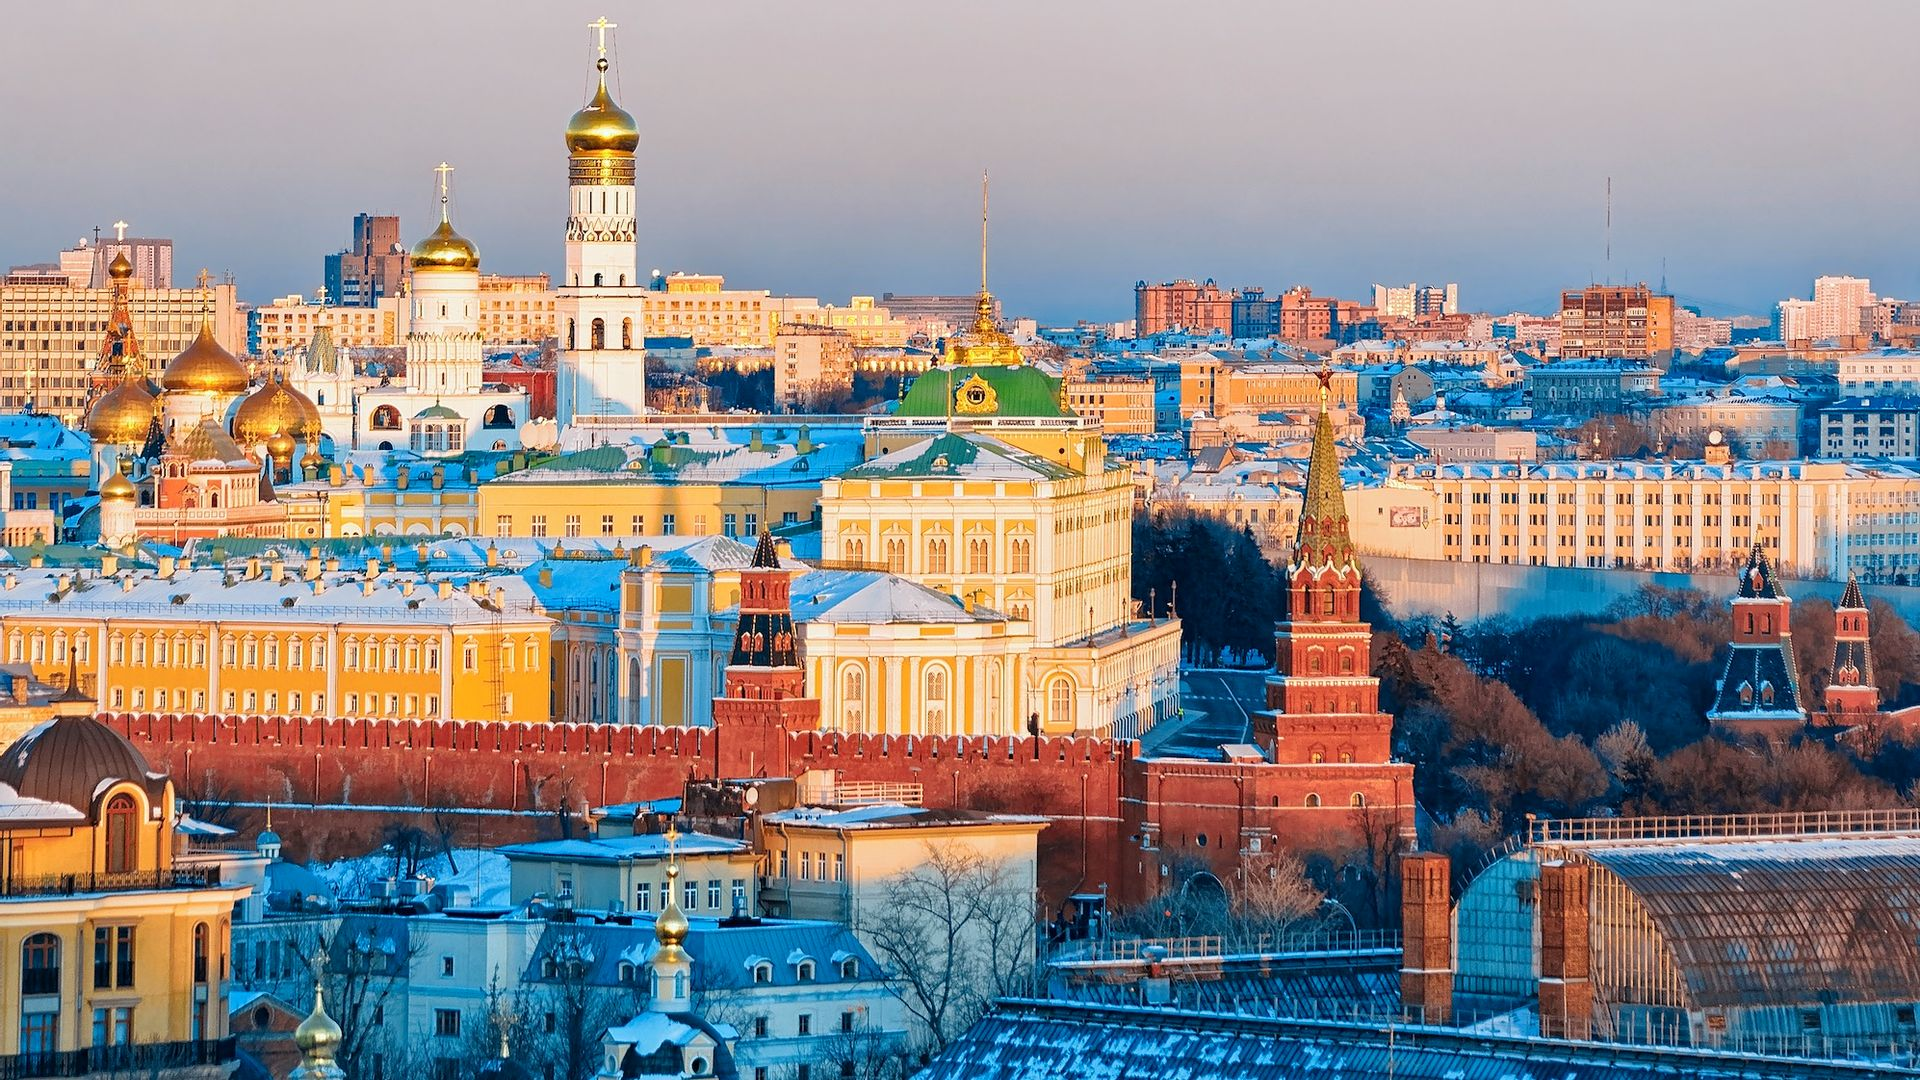 Panorama hiver, Moscou - Russie